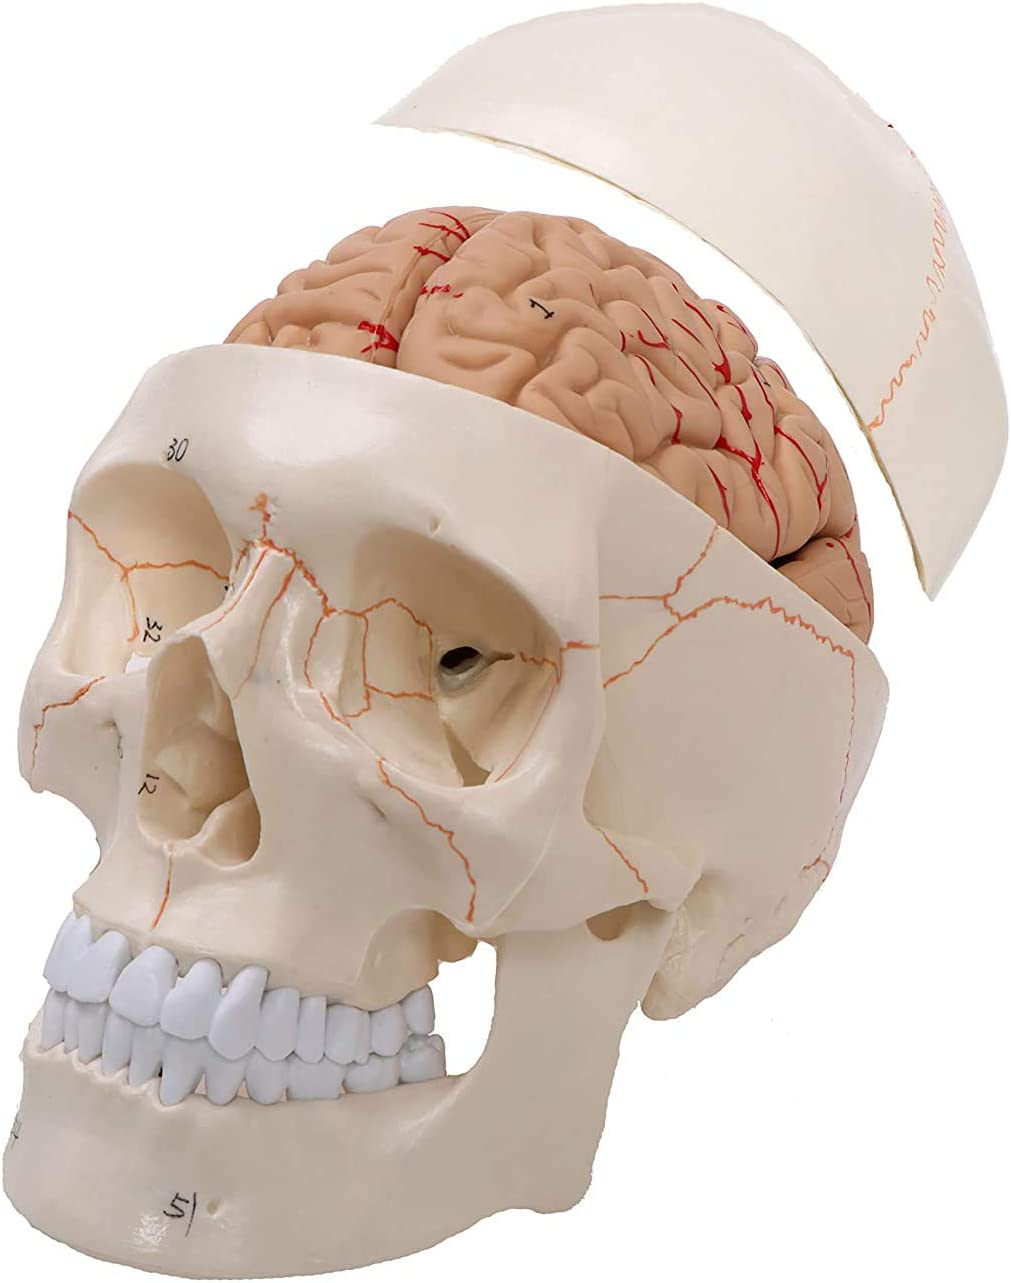 UIGJIOG Human Selling rankings Skull Model 2021 autumn and winter new Life-Size Professional with Grad Brain